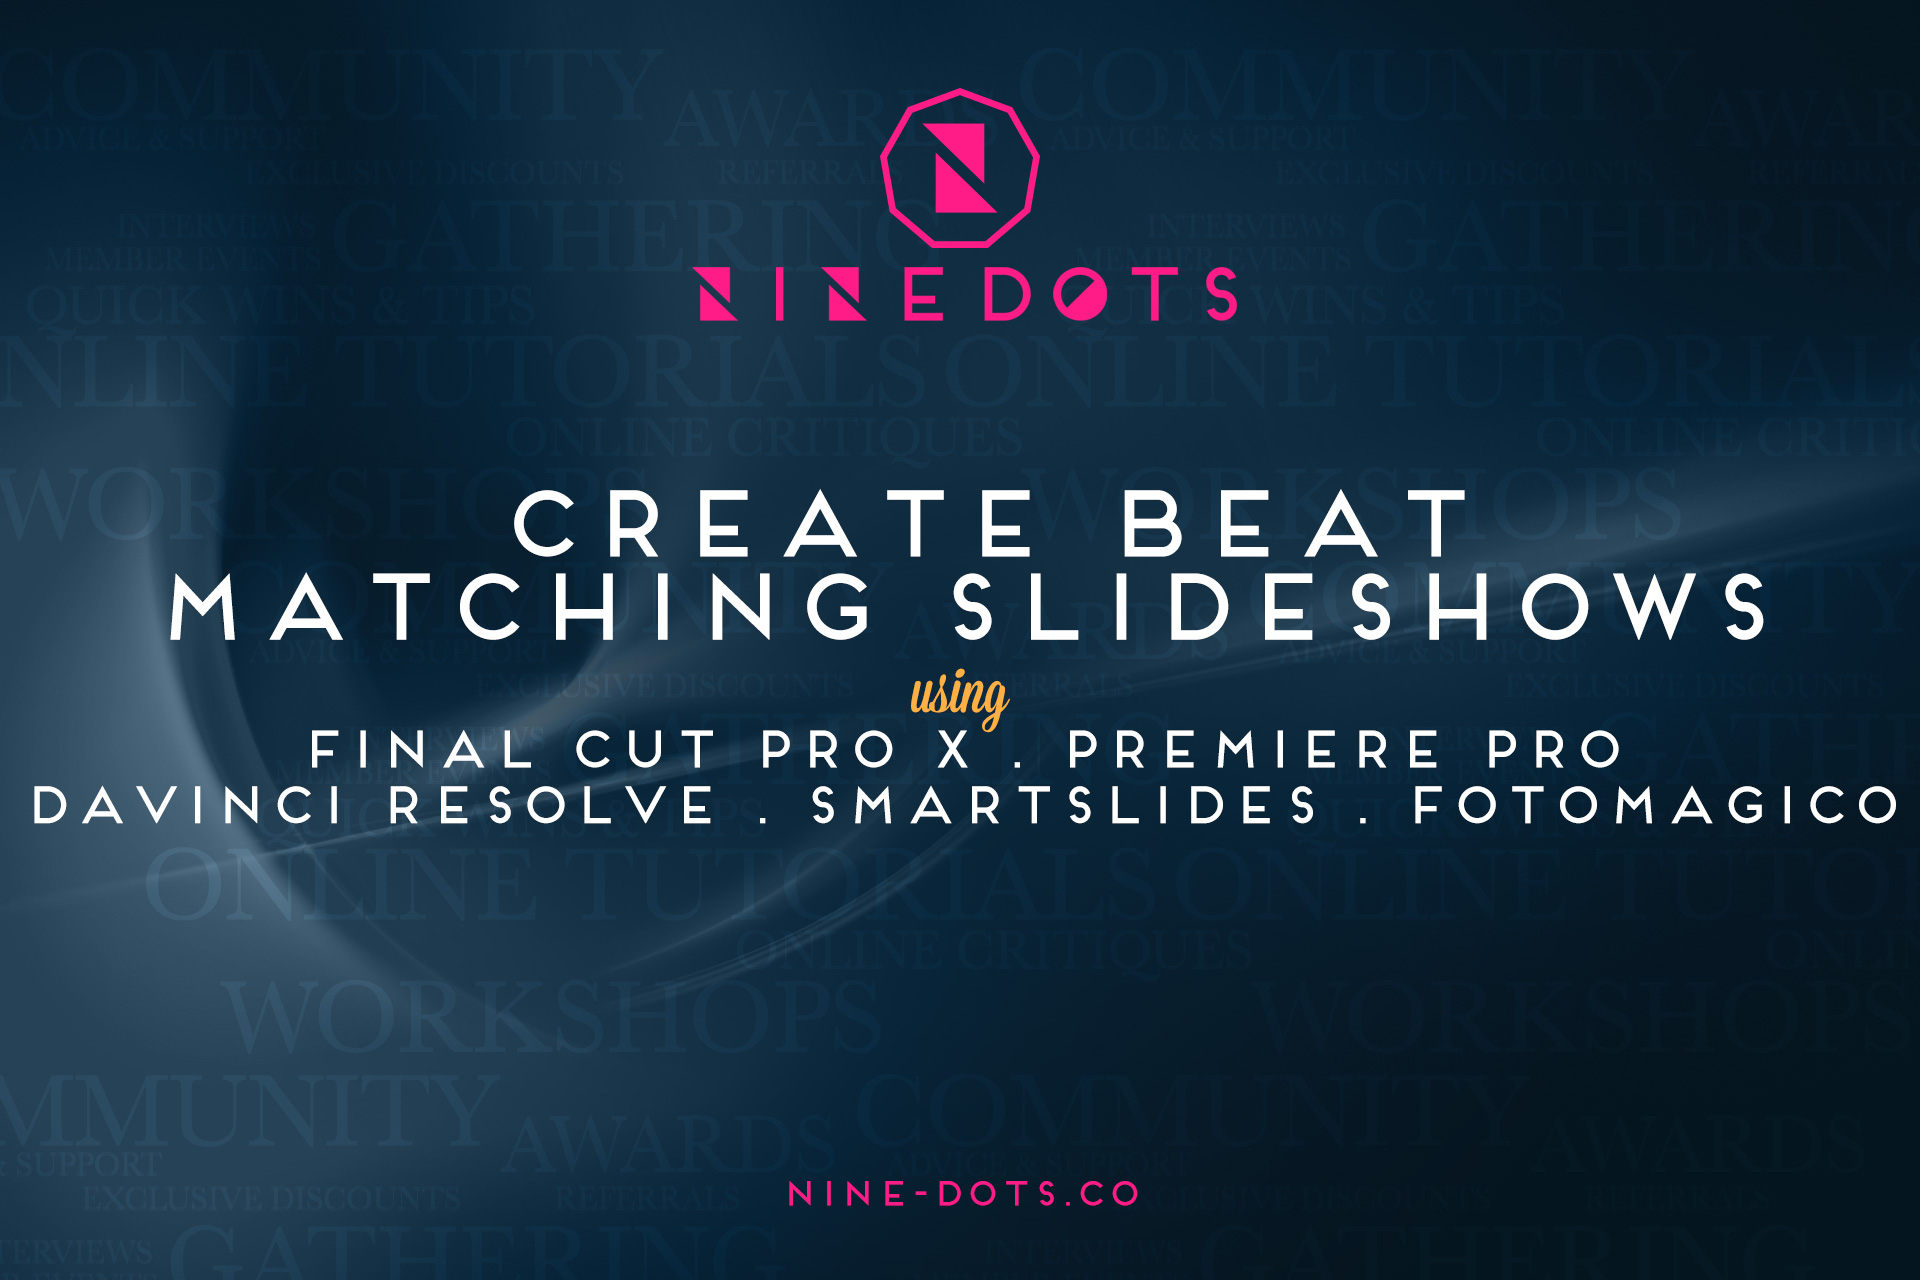 creat beat matching slideshows header